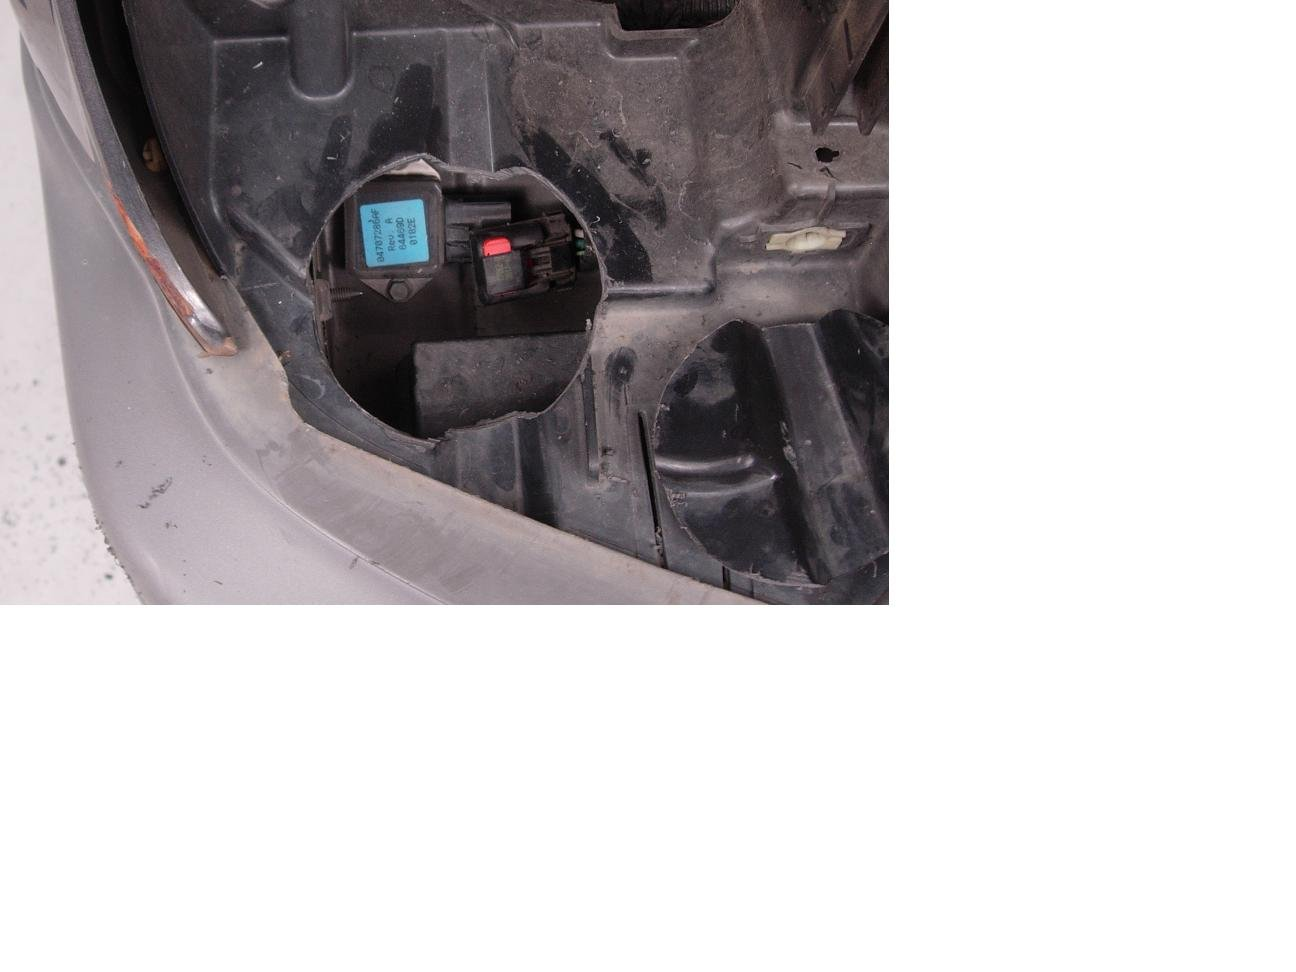 Where Is The Radiator Fan Relay On A 2004 Jeep Grand Cherokee Electric Installation Page 4 North American In Above Picturethe Light Blue Sticker And Located Under Passenger Side Plastic Reinforcement Frame Headlamp